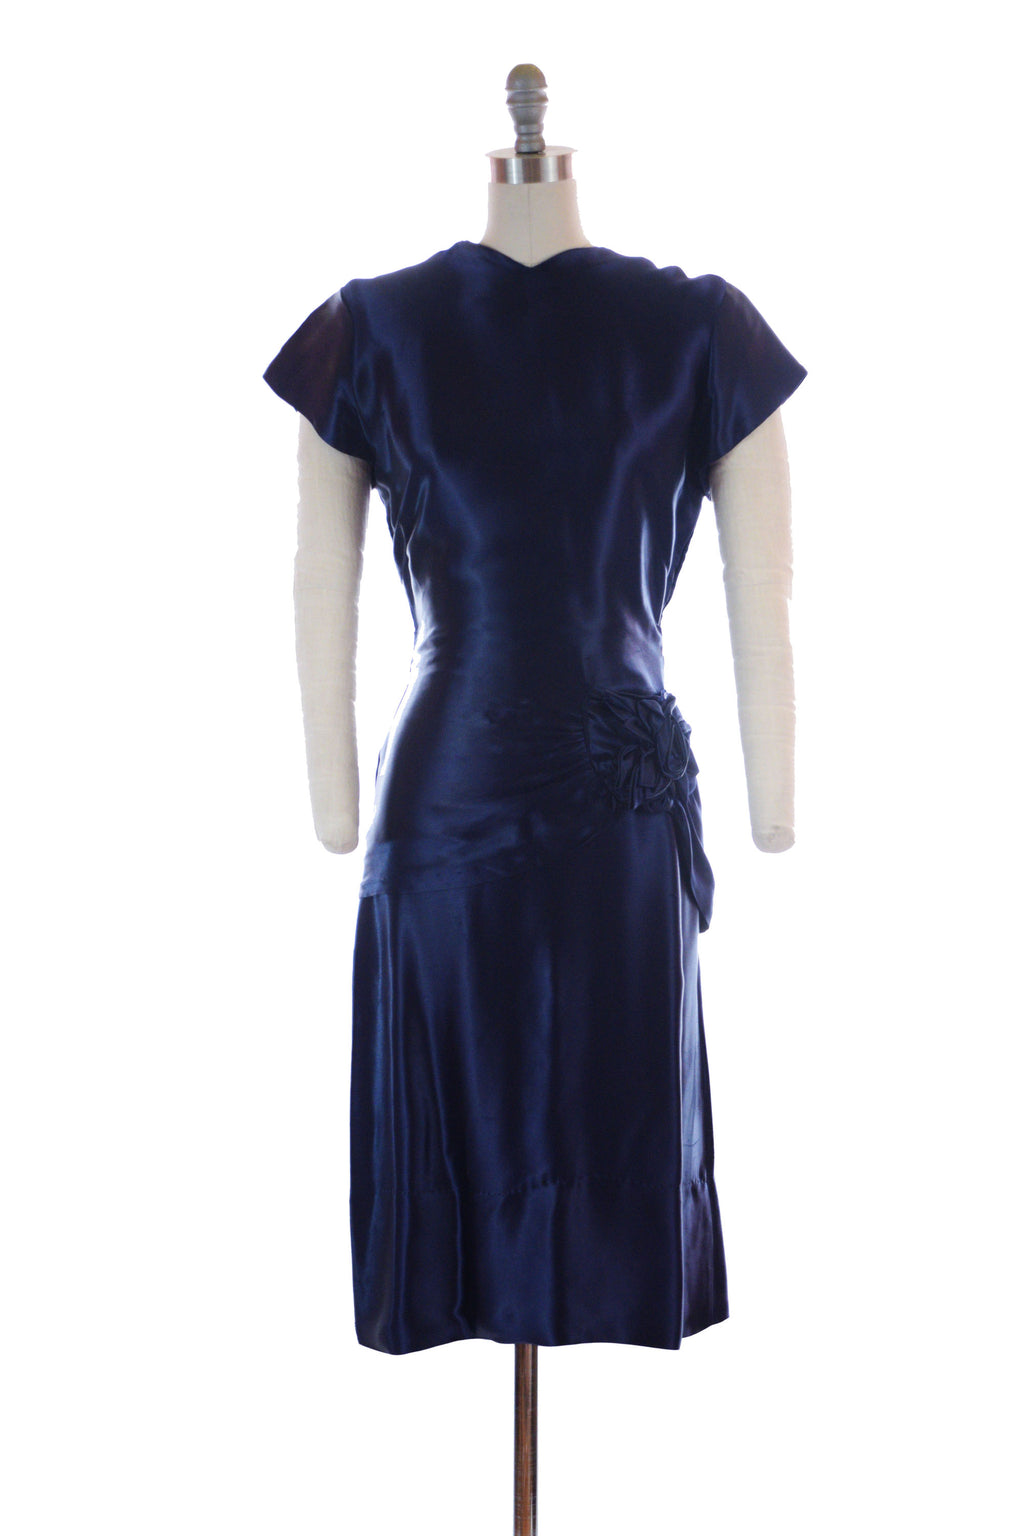 Liquid 1940s Femme Fatale Midnight Blue Satin Draped Two Piece Ensemble